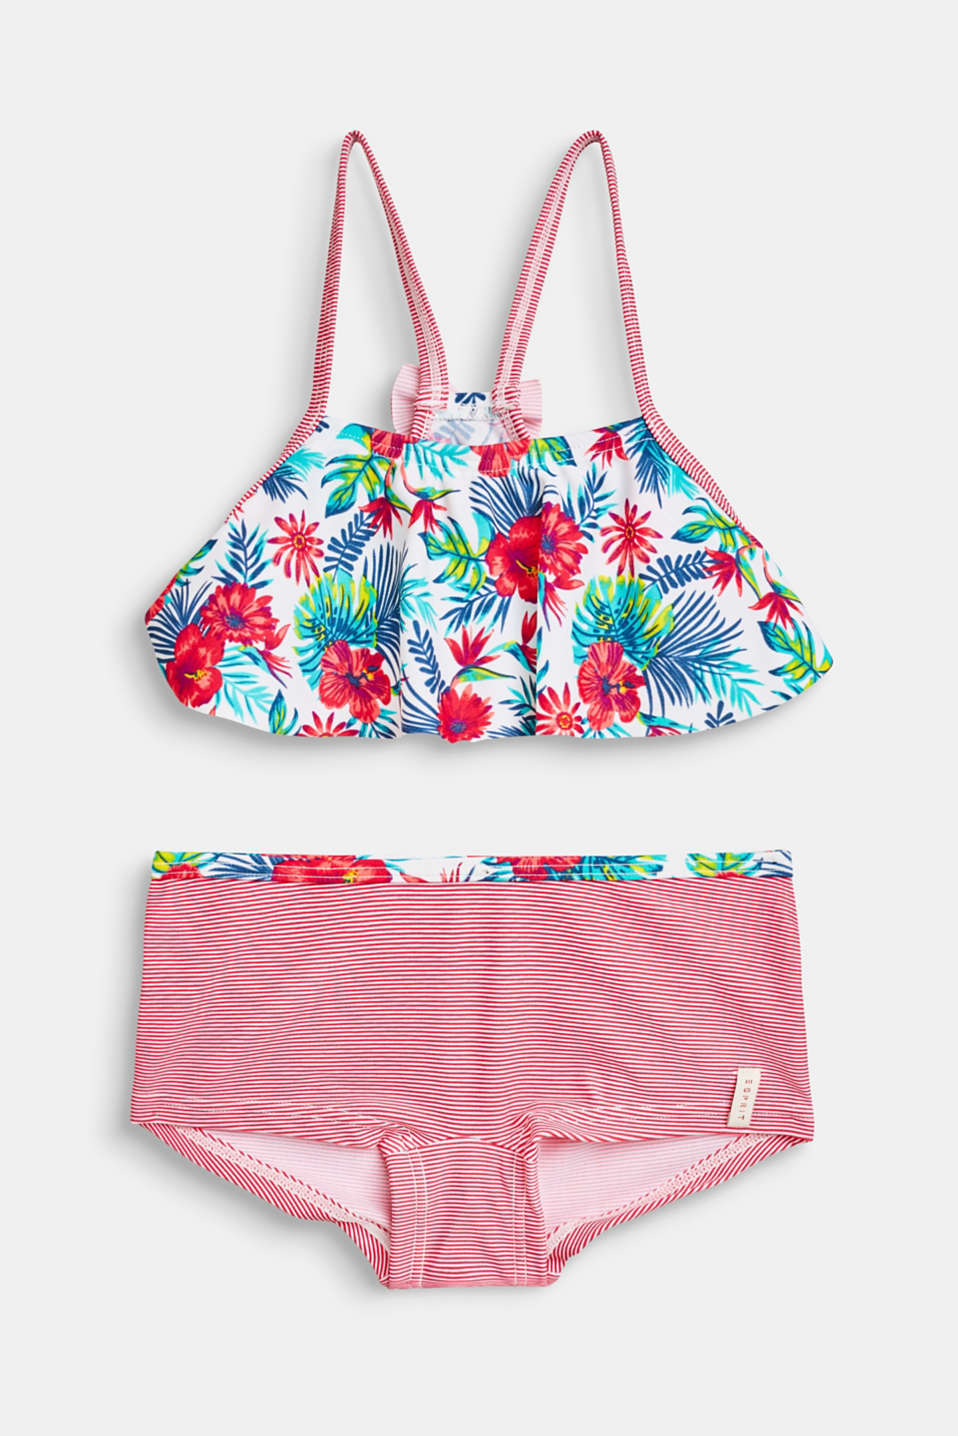 Esprit - Bikini set with a floral and striped print